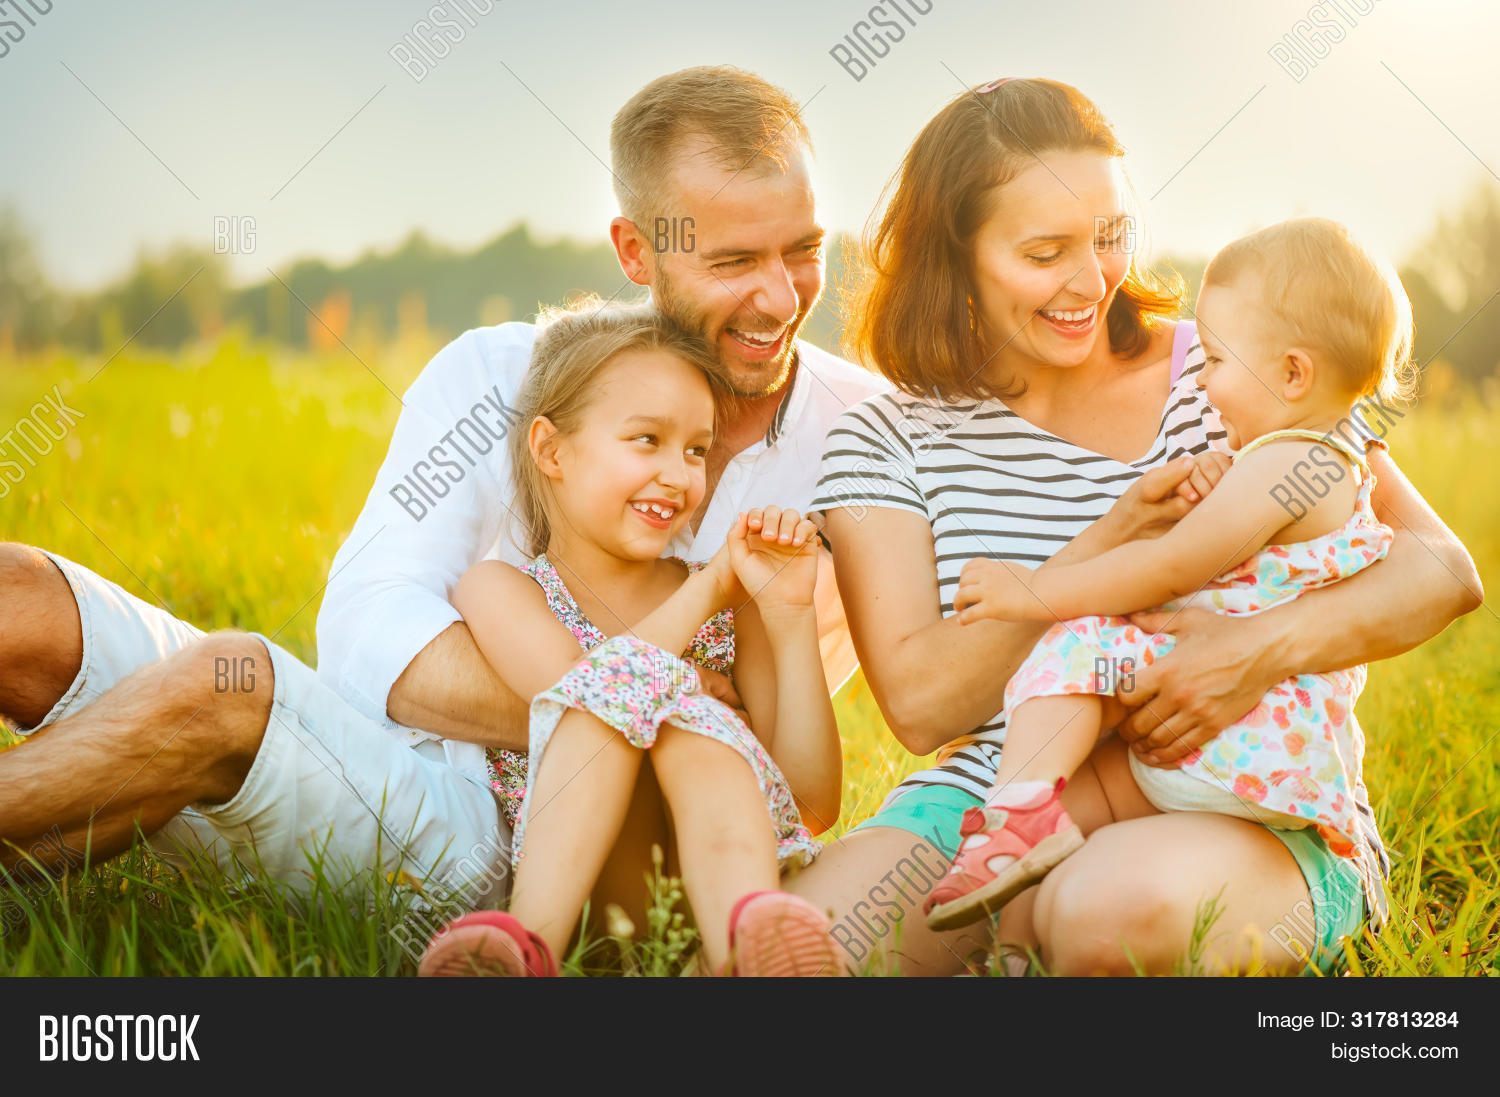 Happy joyful young family father, mother and little daughters having fun outdoors, playing together on a field. Mom, Dad and kids laughing and hugging, enjoying nature outside. Countryside